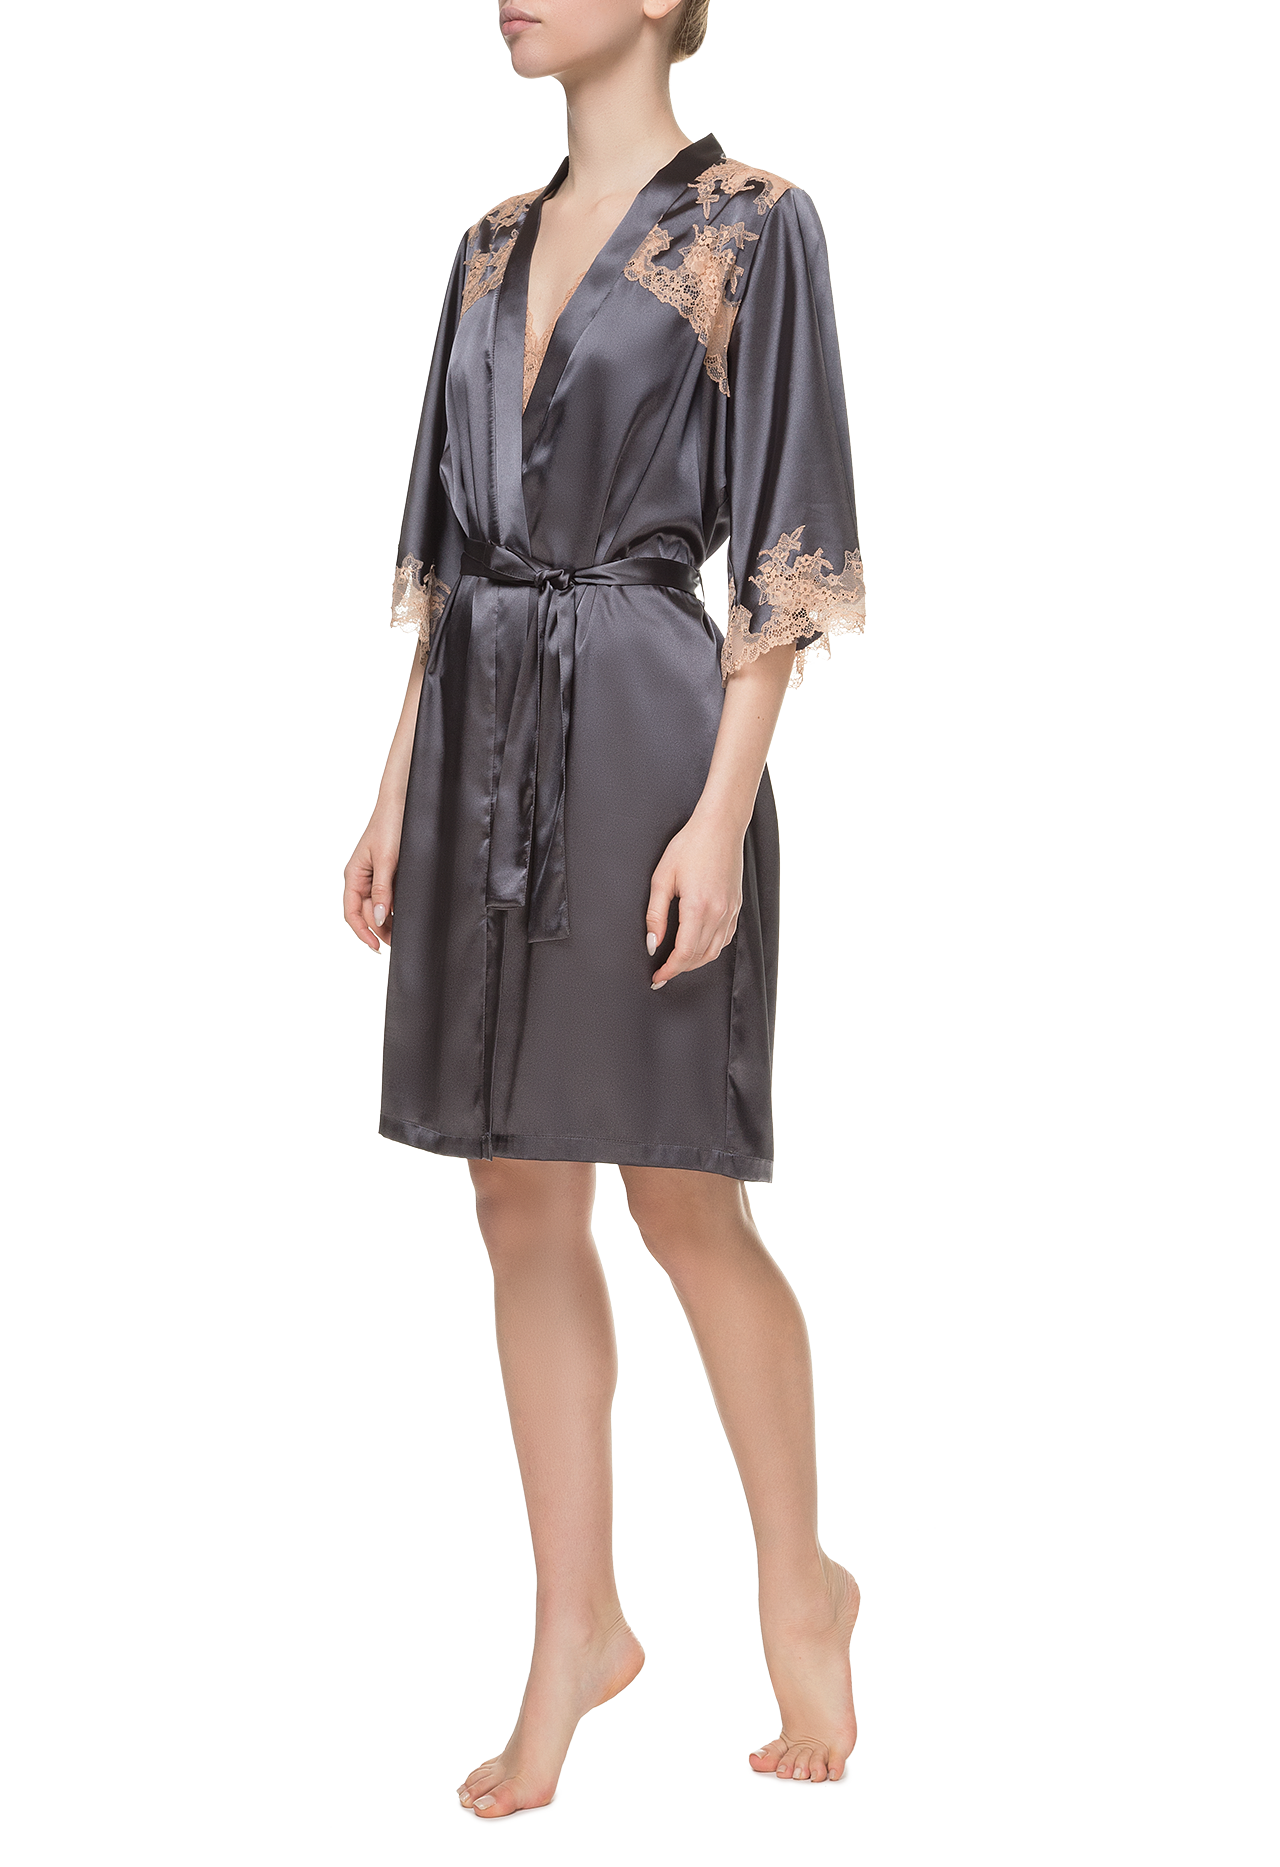 Короткий халат Suavite bathrobe-slp262-sv-g-louise-w-1